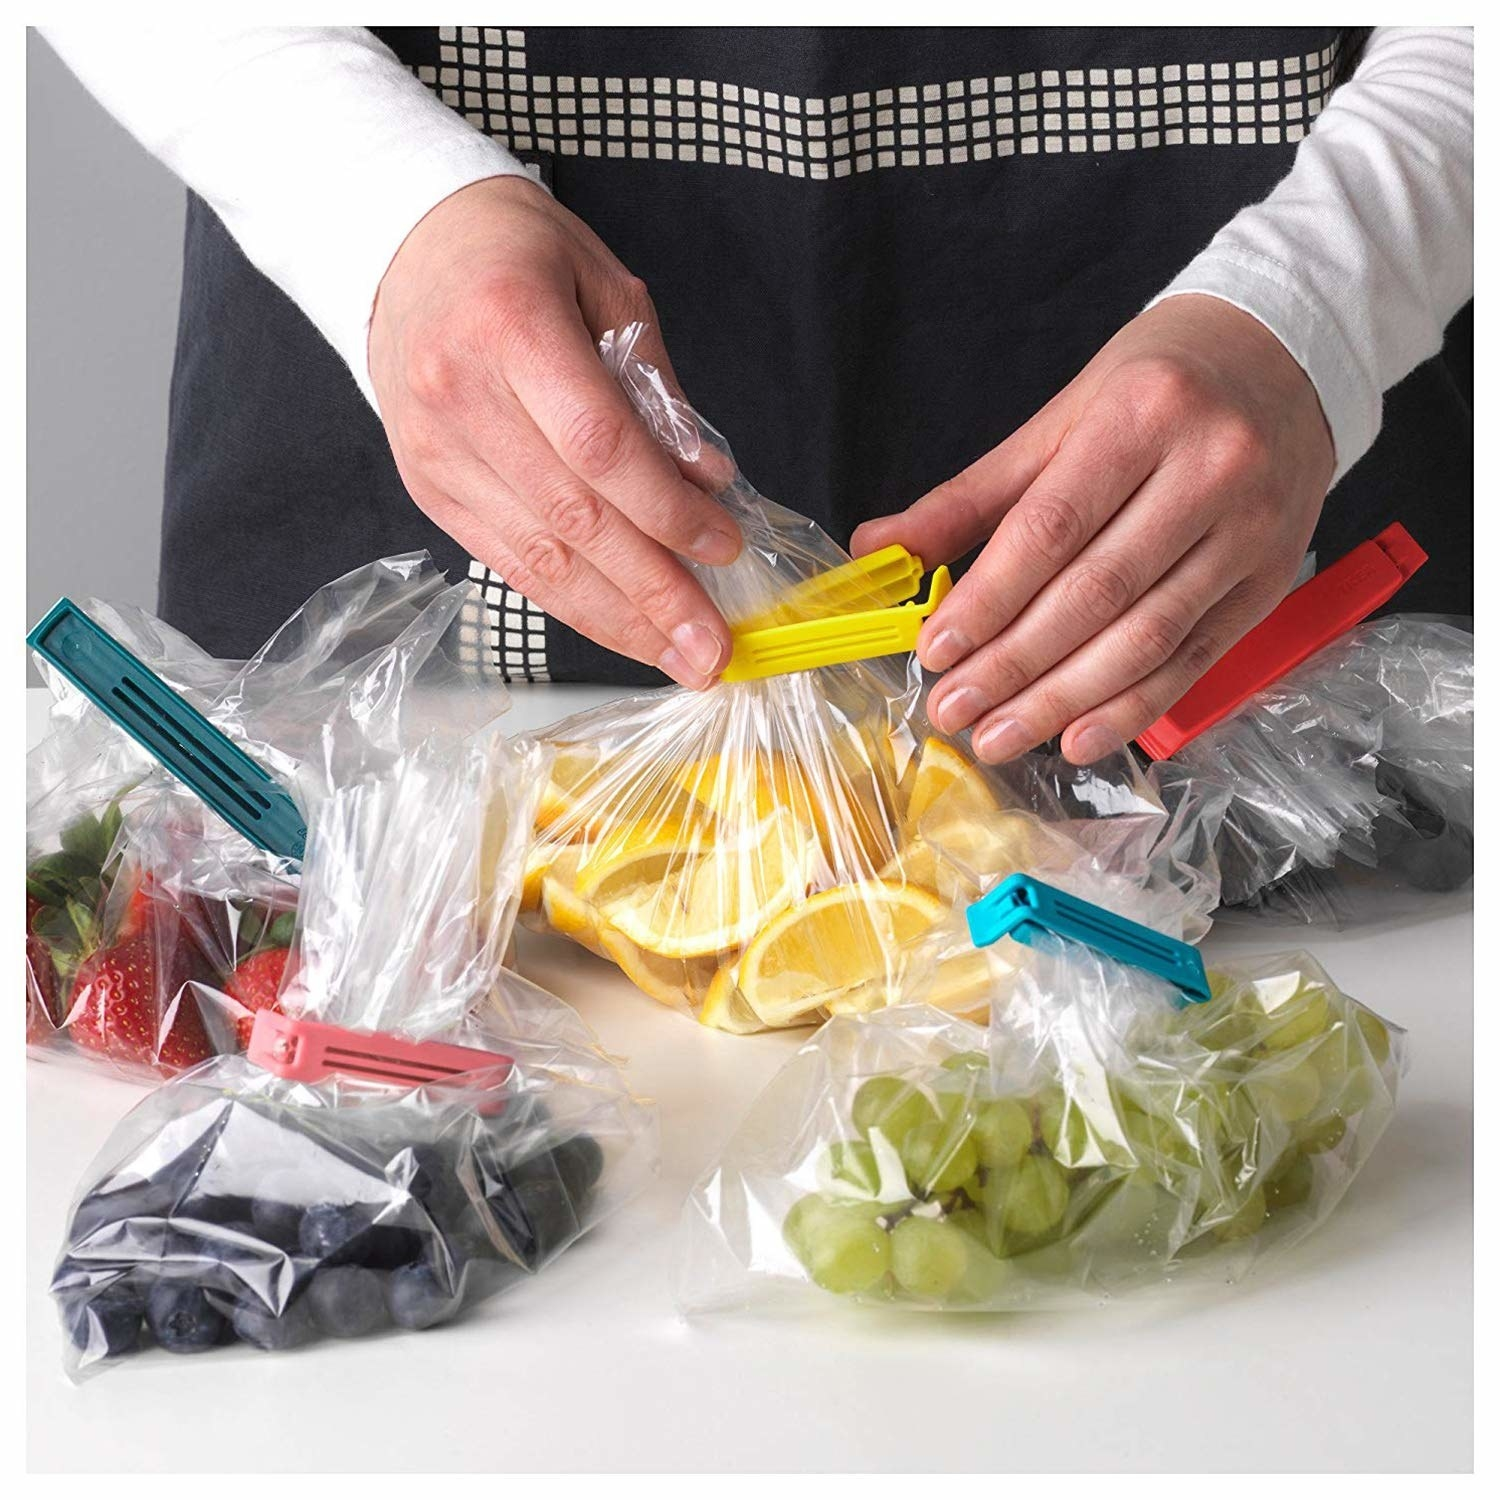 A person using the seal clips to seal plastic bags of food